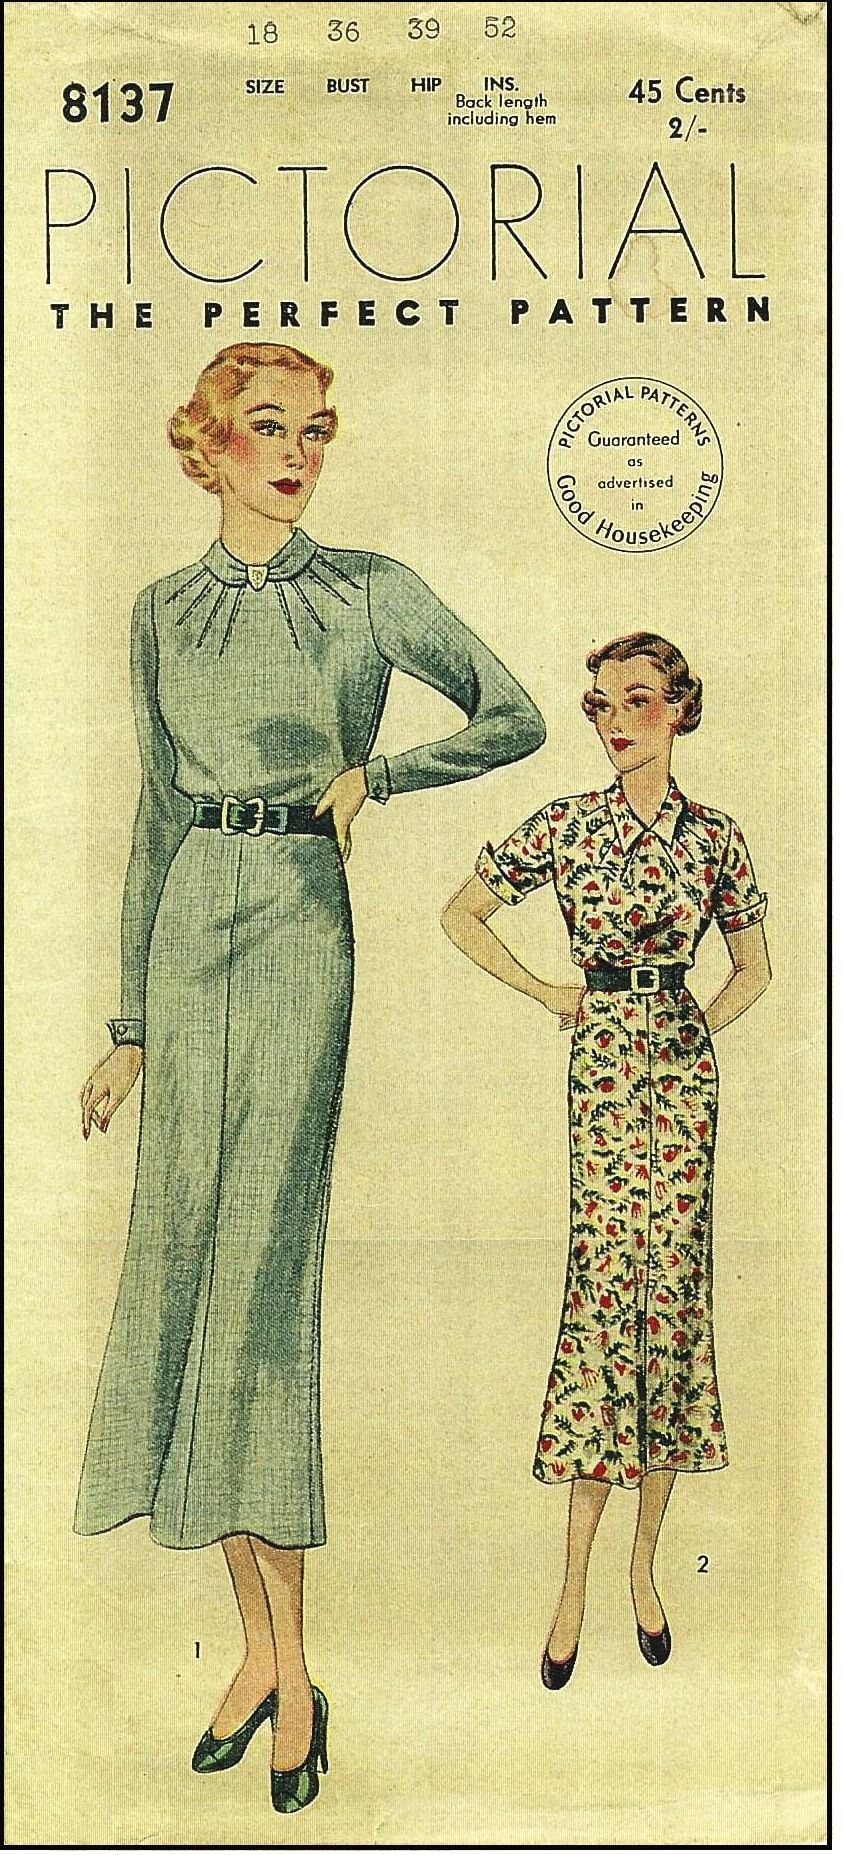 Pictorial review 8137 1930s ladies dress in two styles sewing pictorial review 8137 1930s ladies dress in two styles sewing pattern jeuxipadfo Choice Image